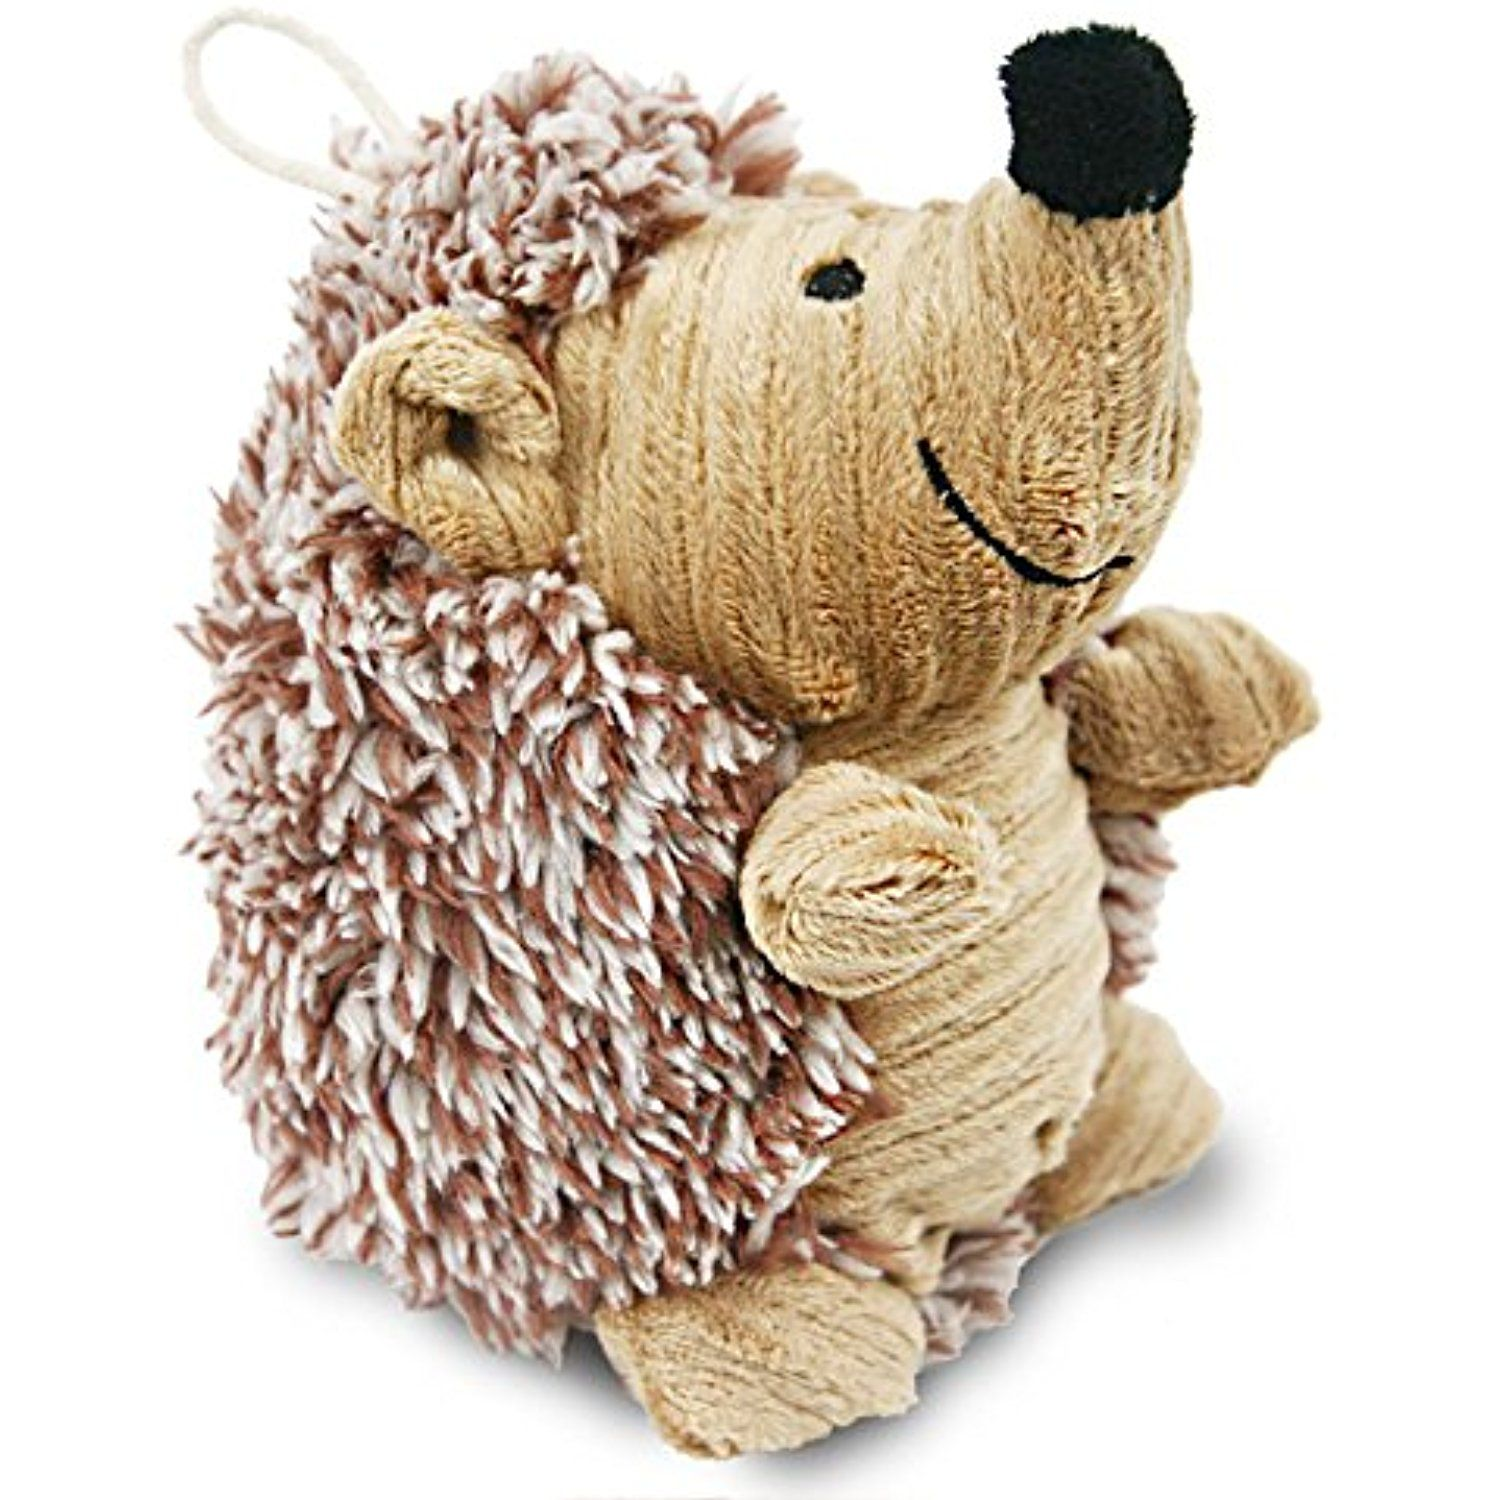 Outward Hound Kyjen 32112 Hedghog Squeaking Plush Dog Toy Holiday